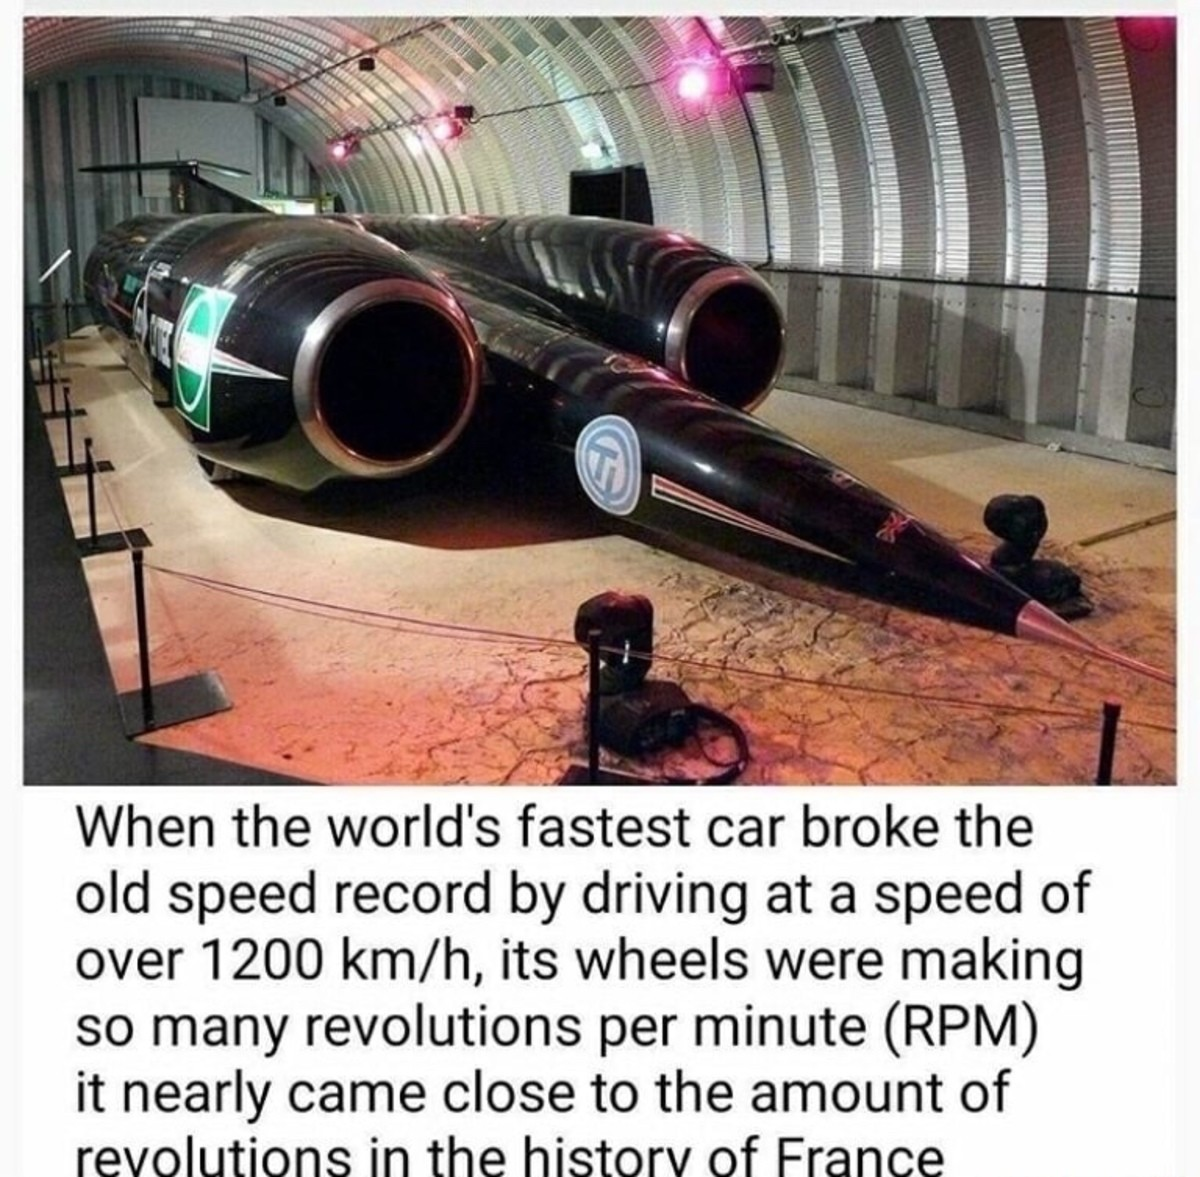 """alcoholic deserted dusty Oyster. .. I really don't think a jet engine powered by rocket fuel strapped to 4 wheels should qualify as a """"car"""""""